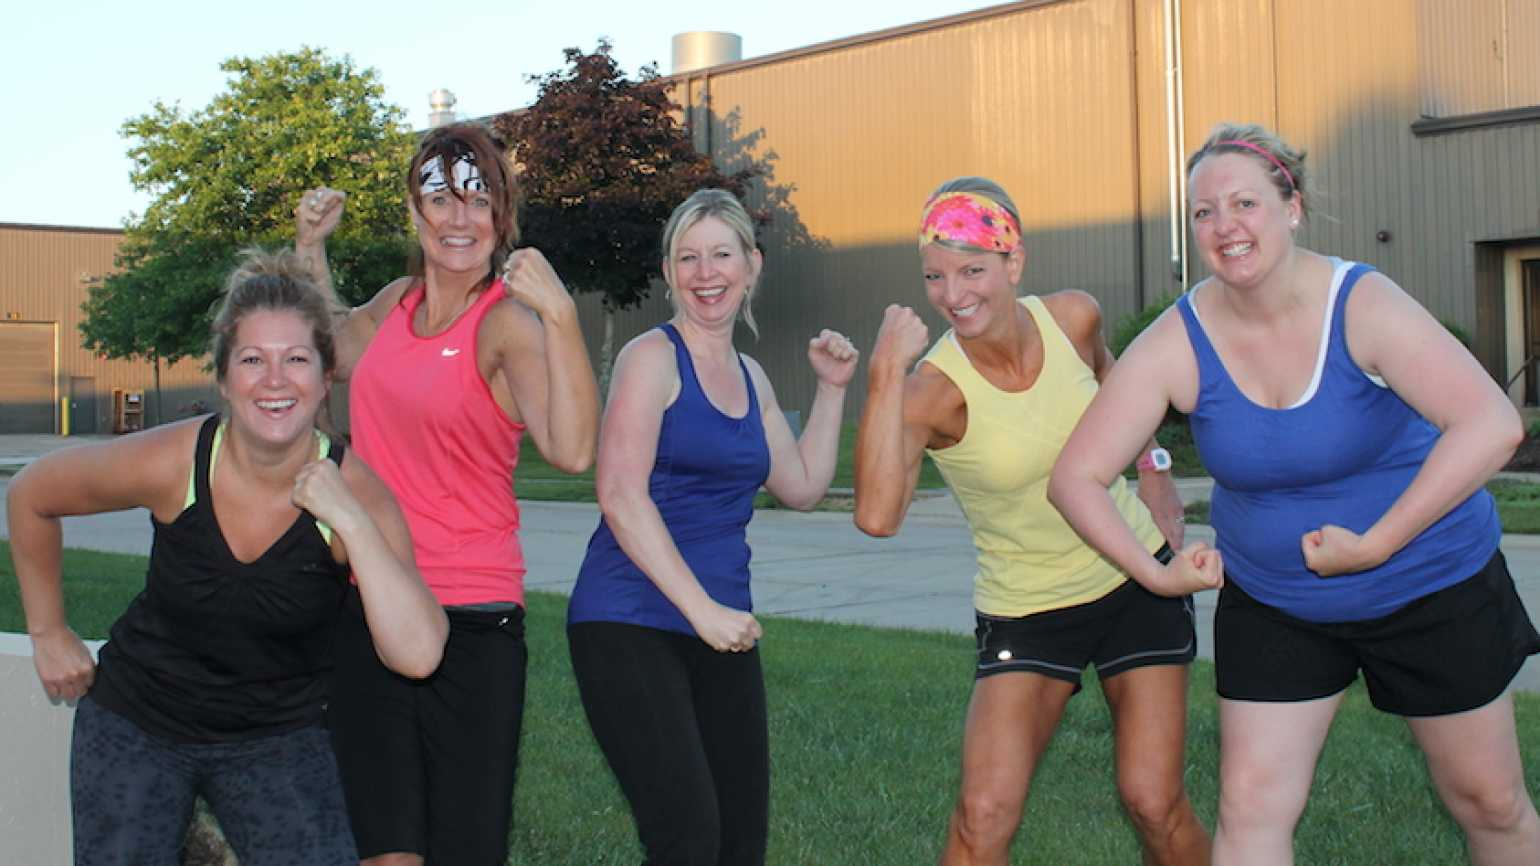 Shawnelle (second from left) with her running buddies